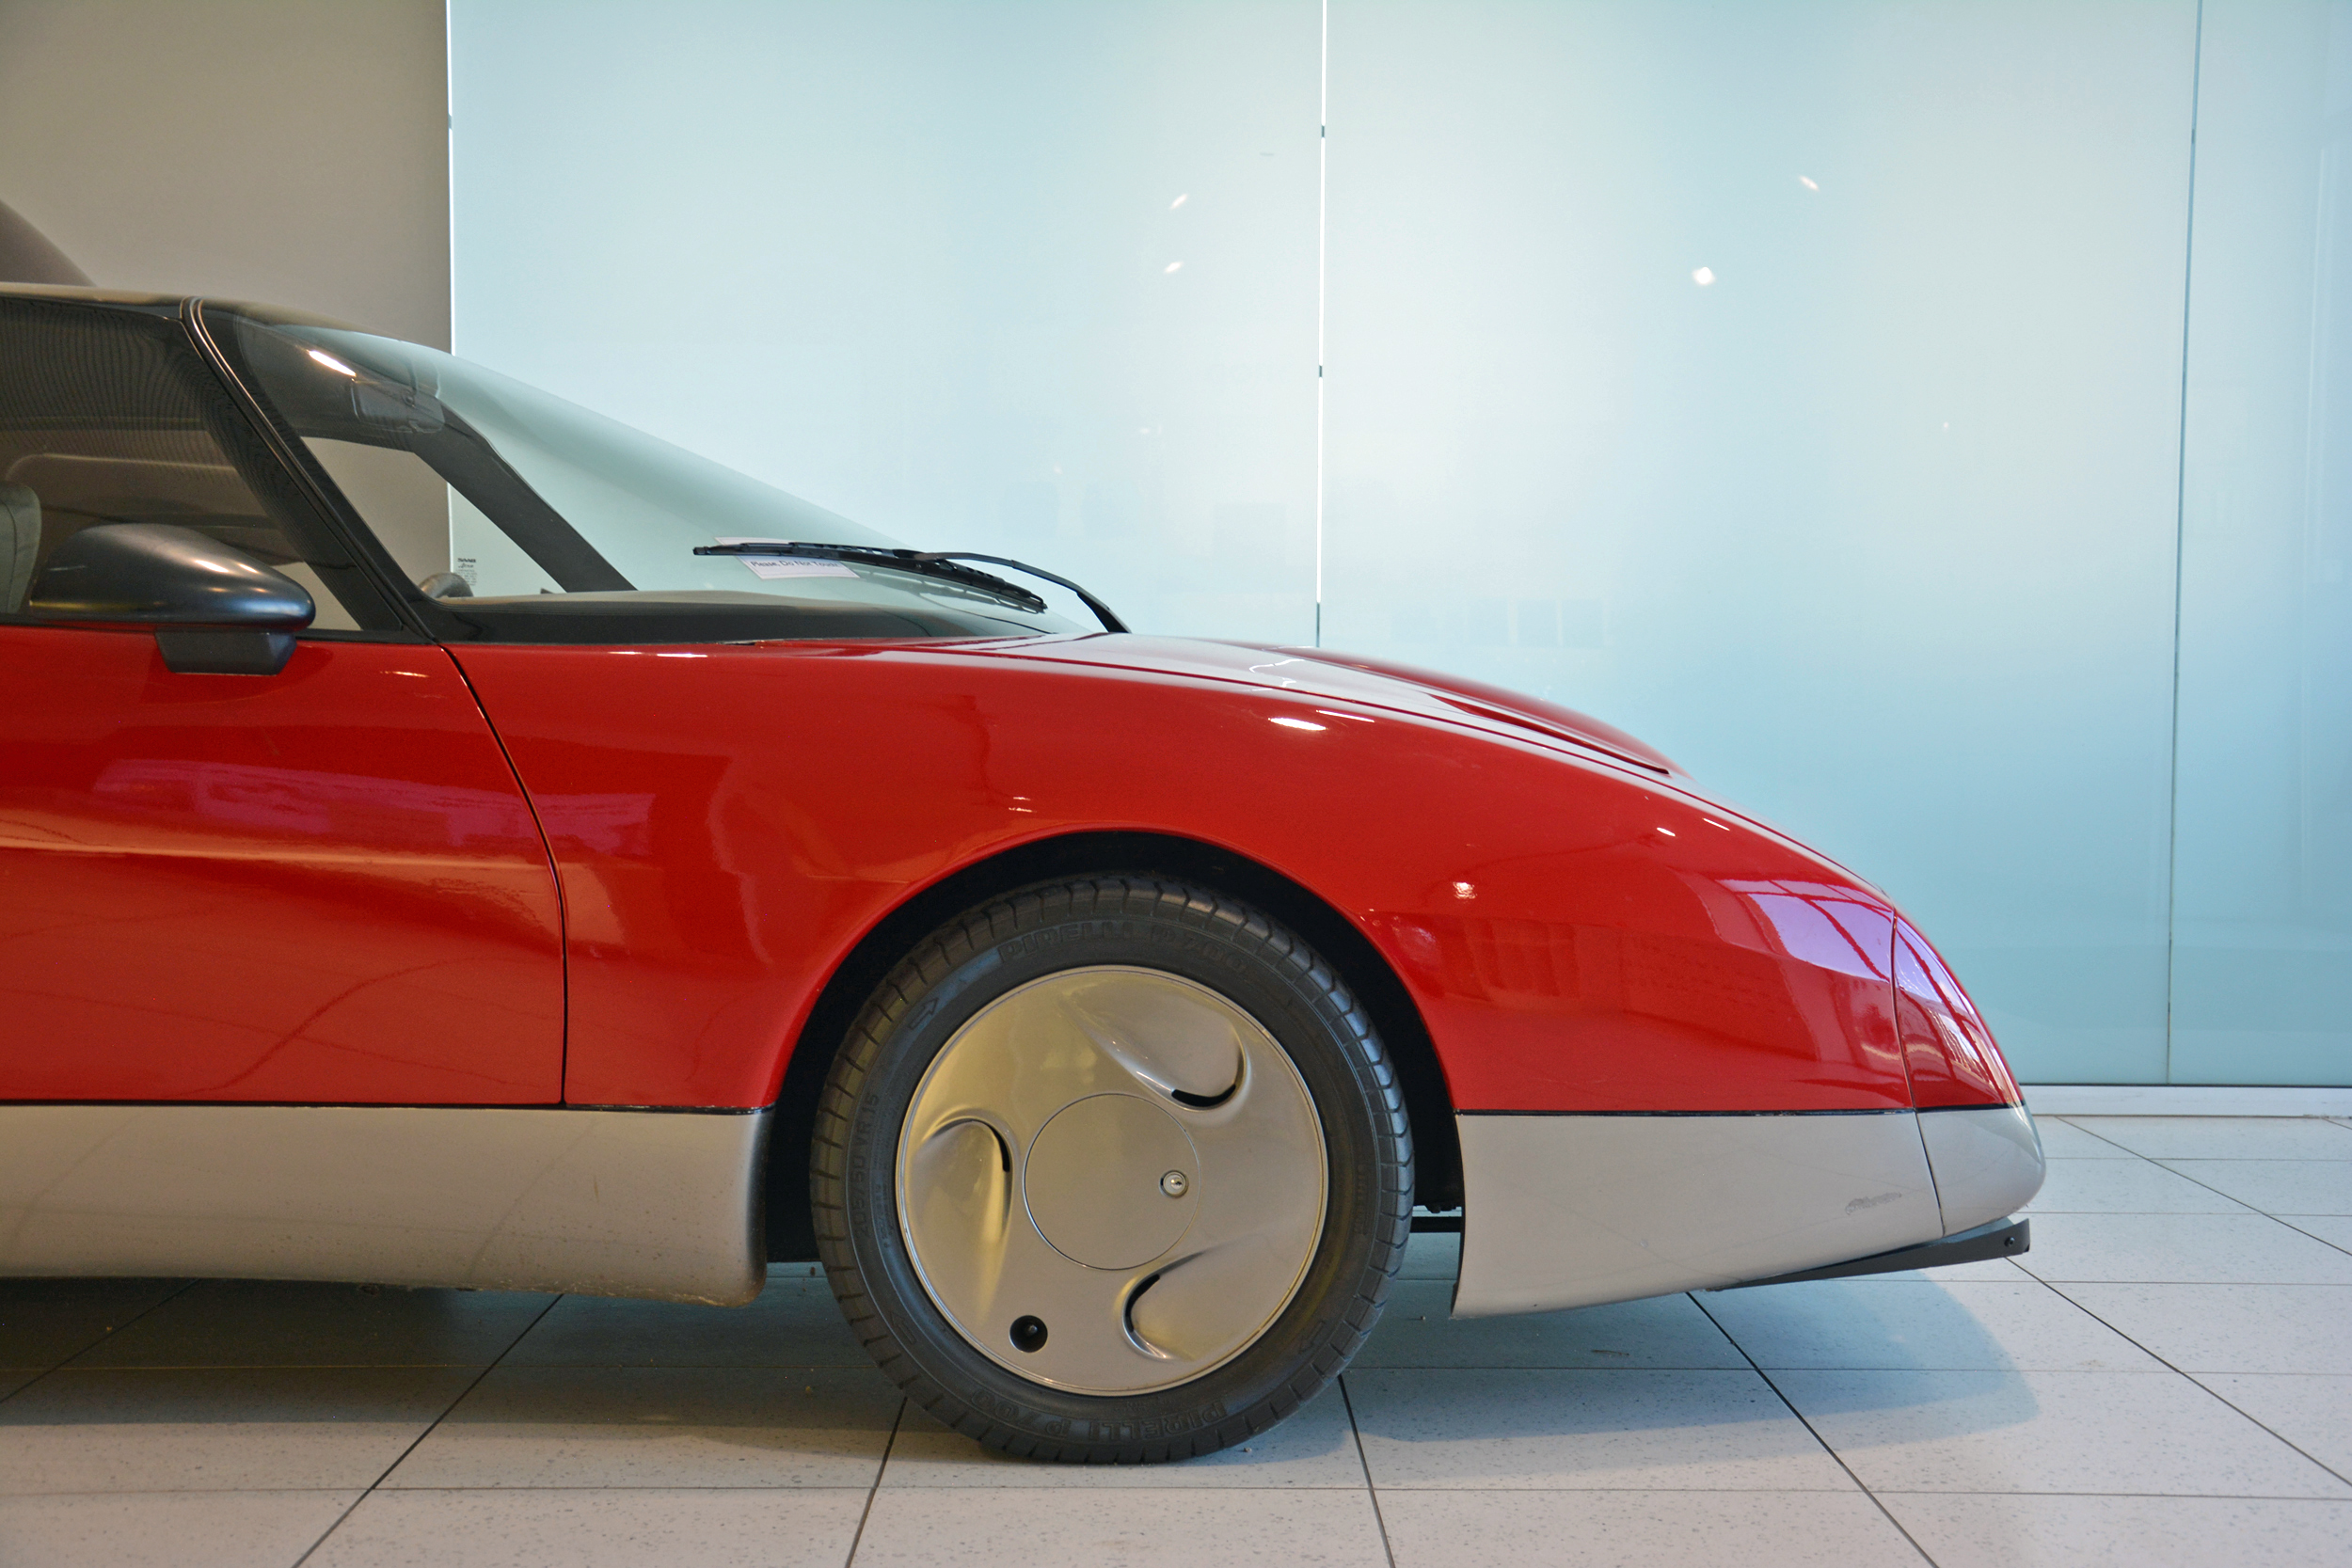 saab museum ev1 front profile view